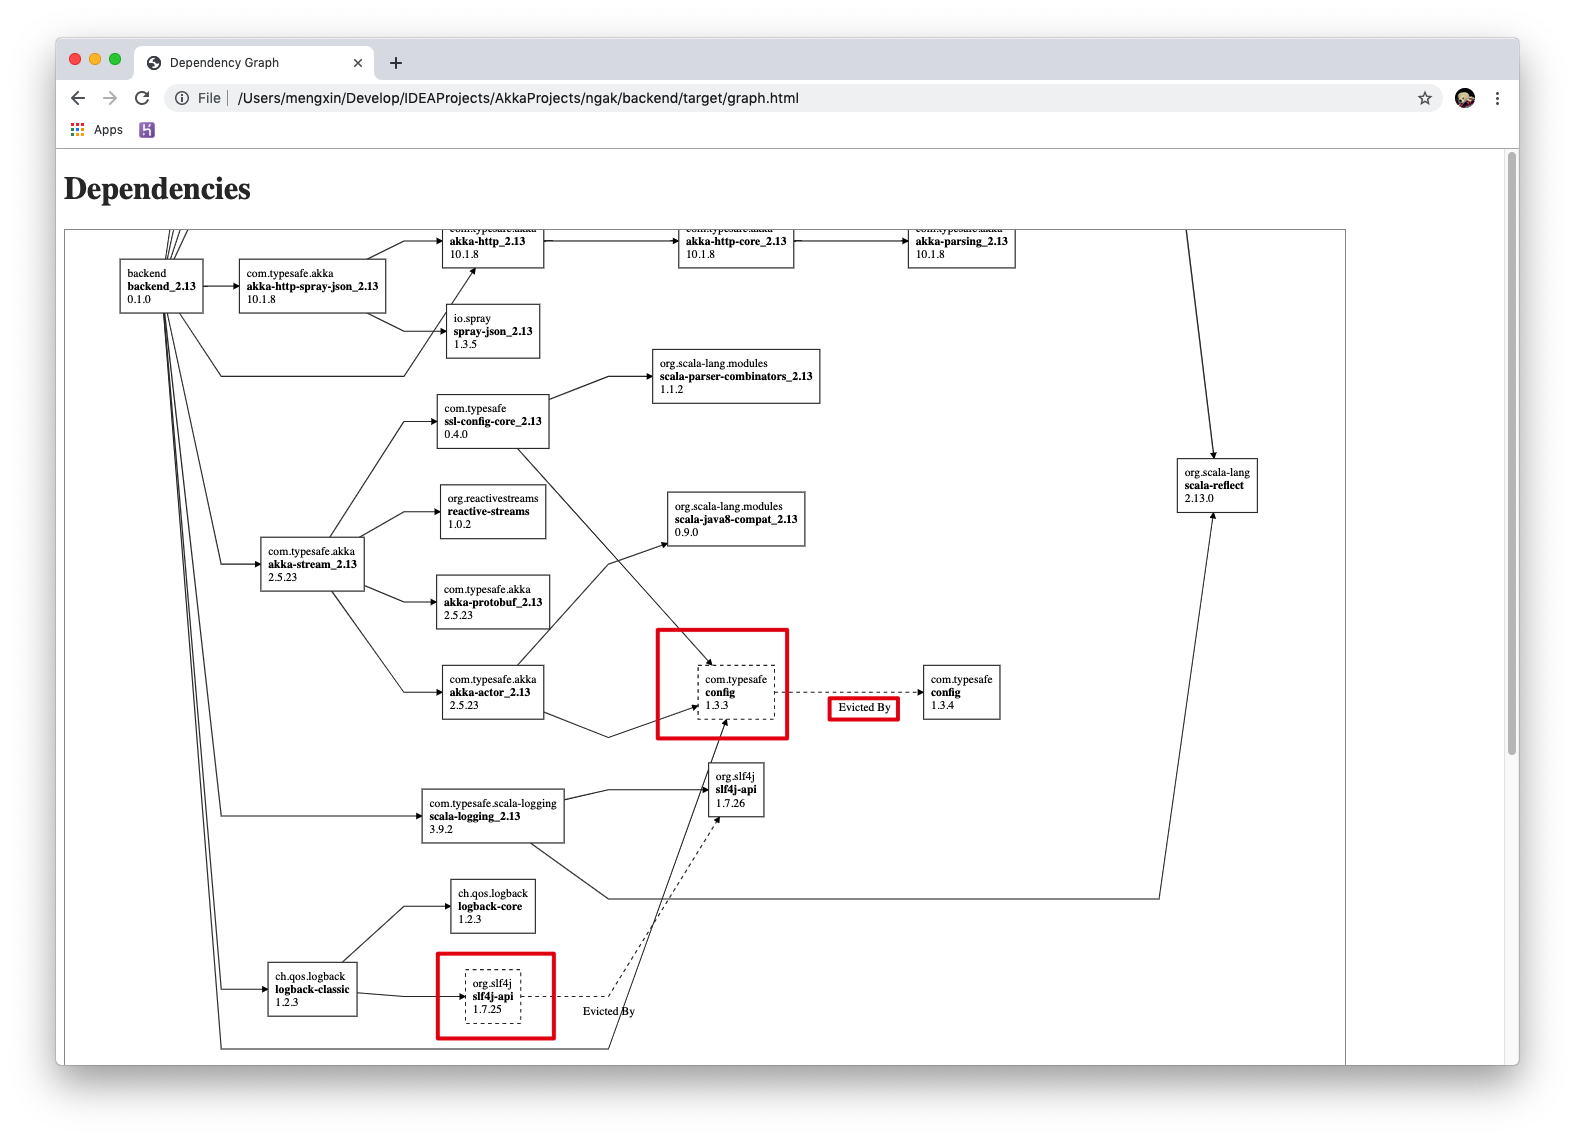 sbt dependency graph broswer image